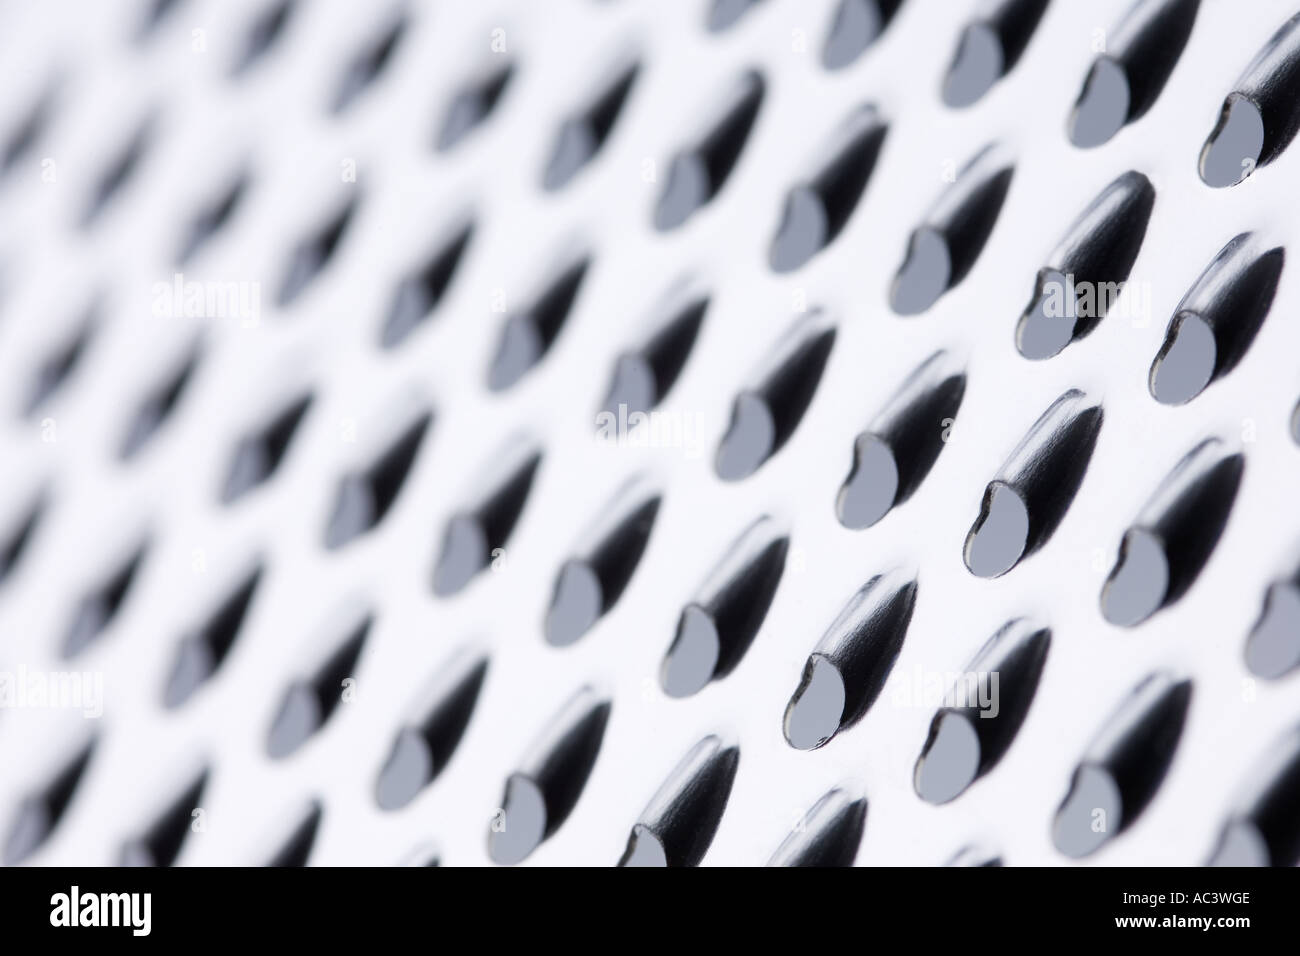 cheese grater - Stock Image